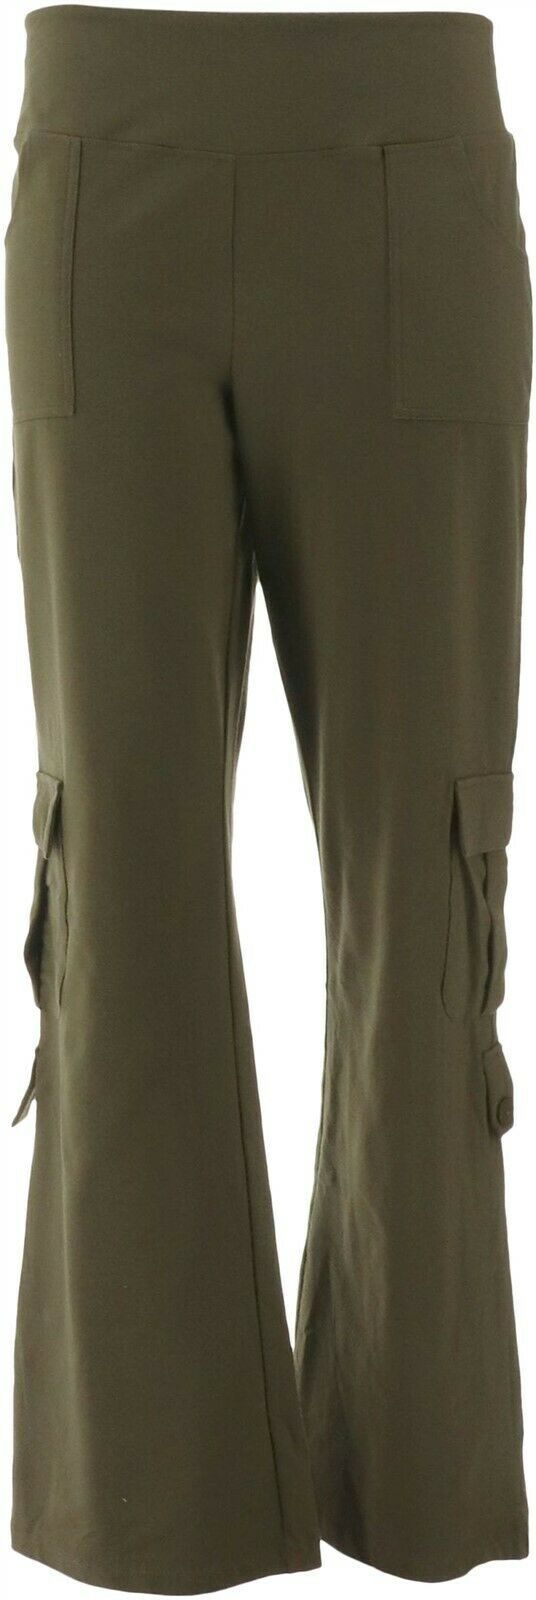 Primary image for Wicked Women Control Cargo Bootcut Pants Basil 2X NEW A301338